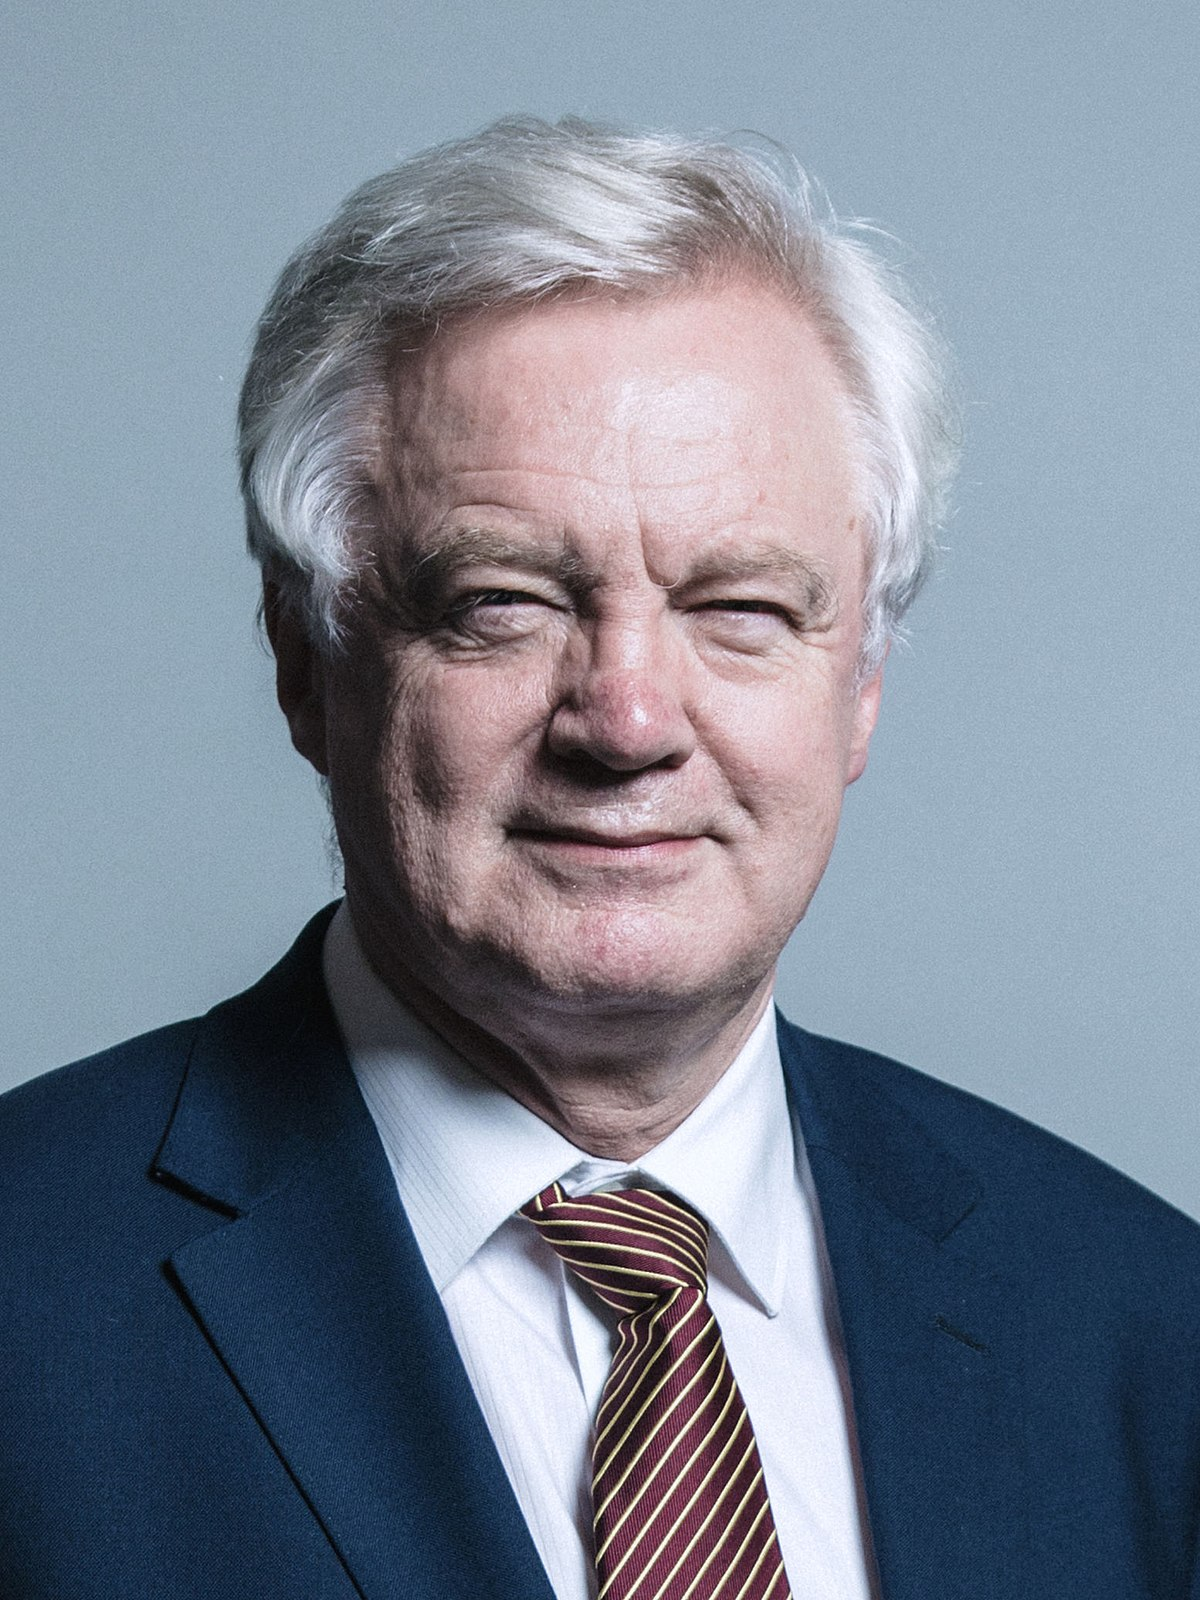 1200px-Official_portrait_of_Mr_David_Davis_crop_2.jpg